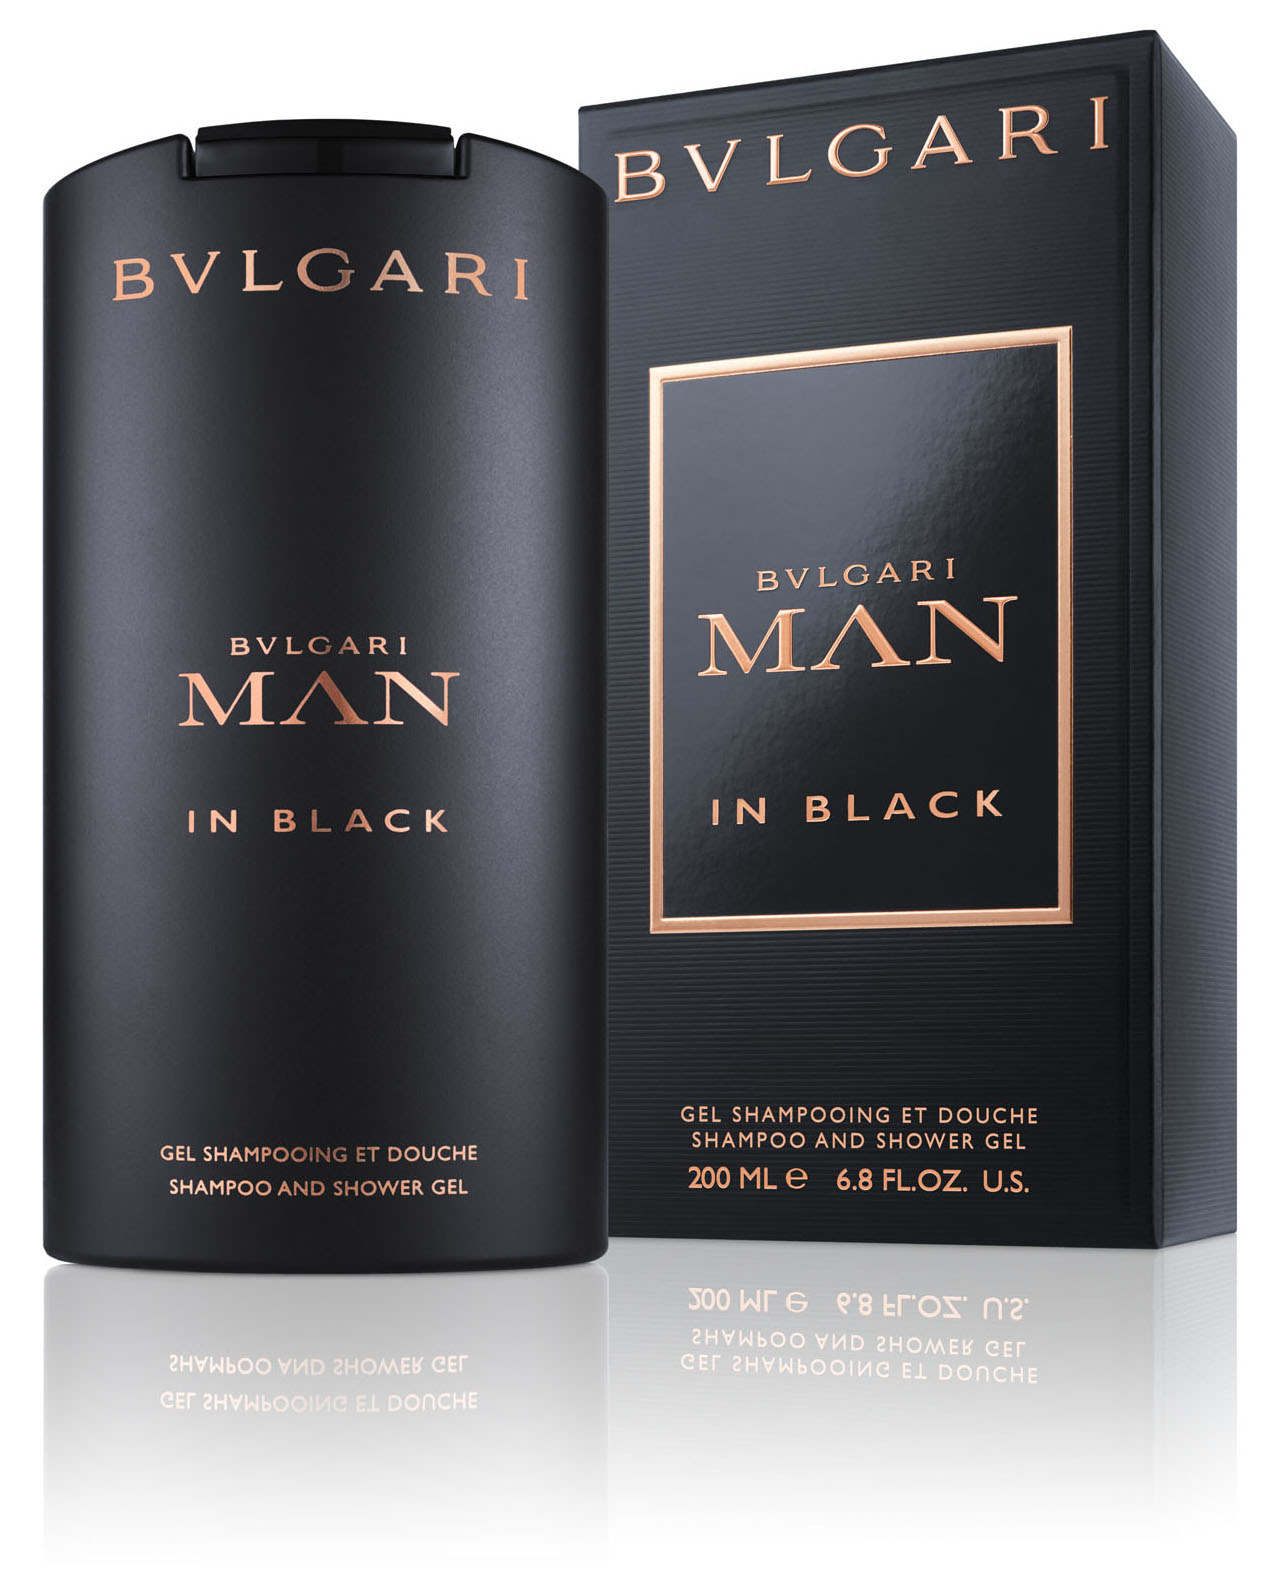 Bvlgari Showergel Man in Black